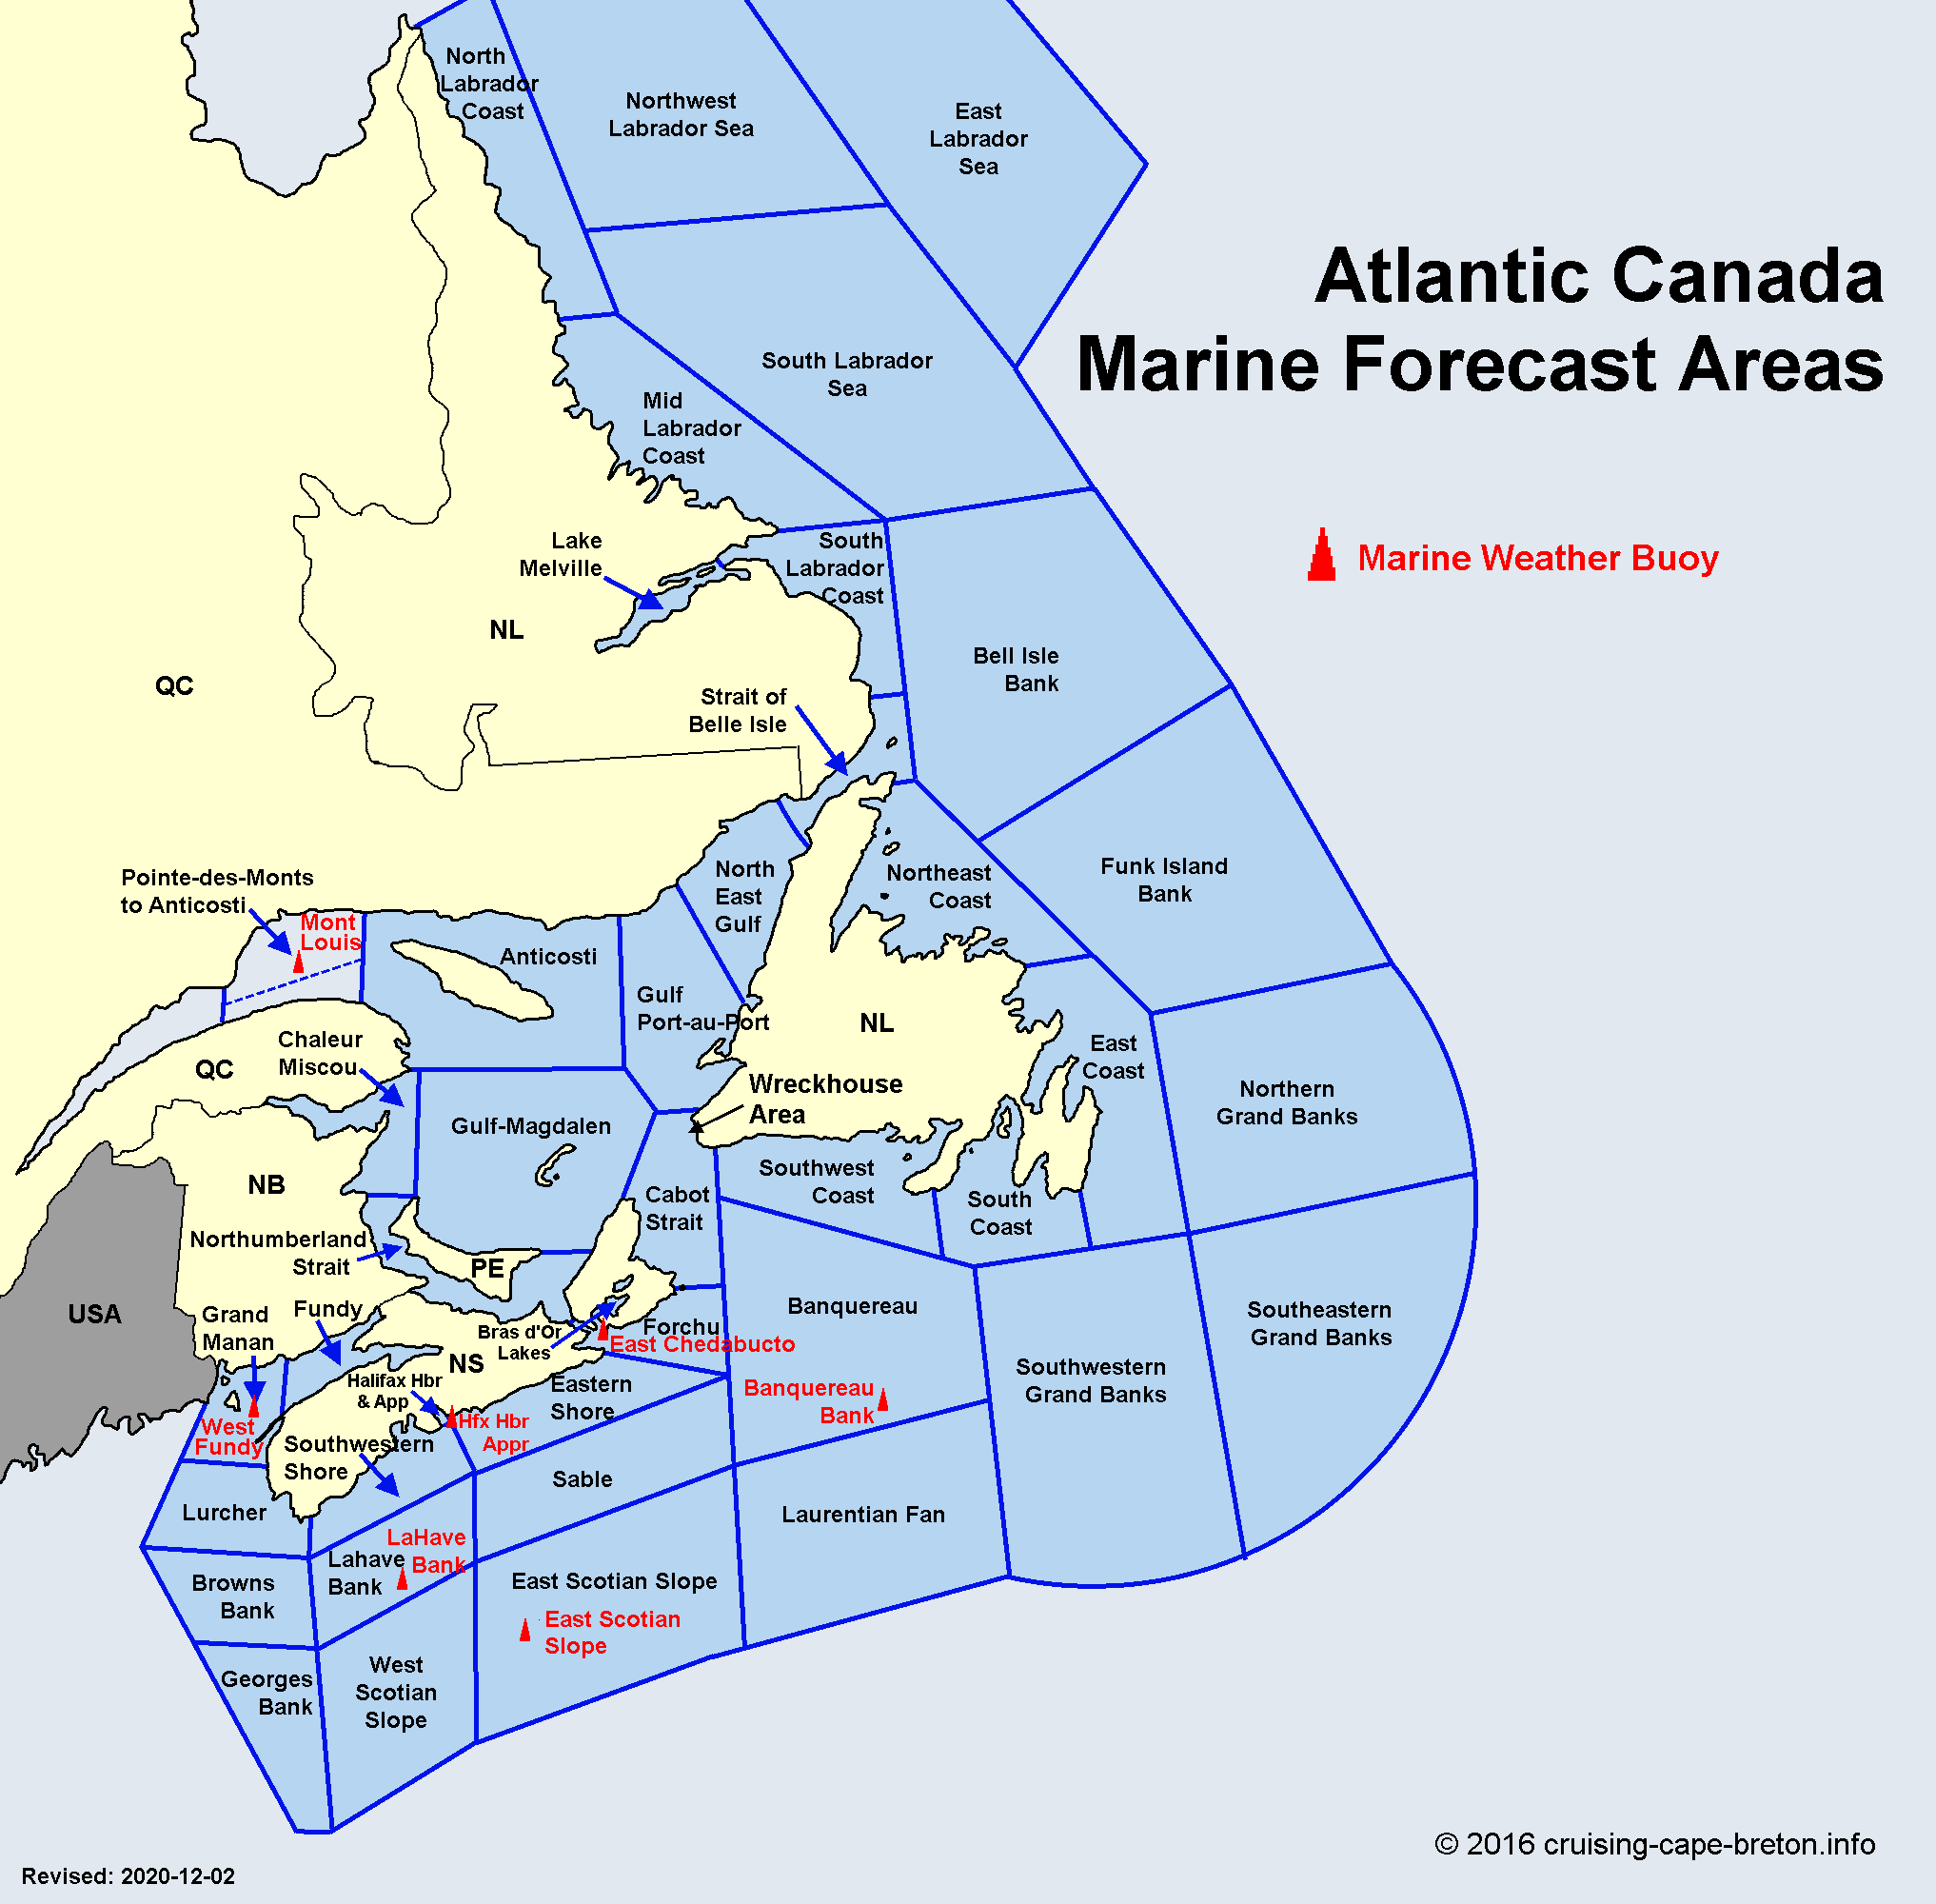 Marine Weather Forecast Information for Atlantic Canada